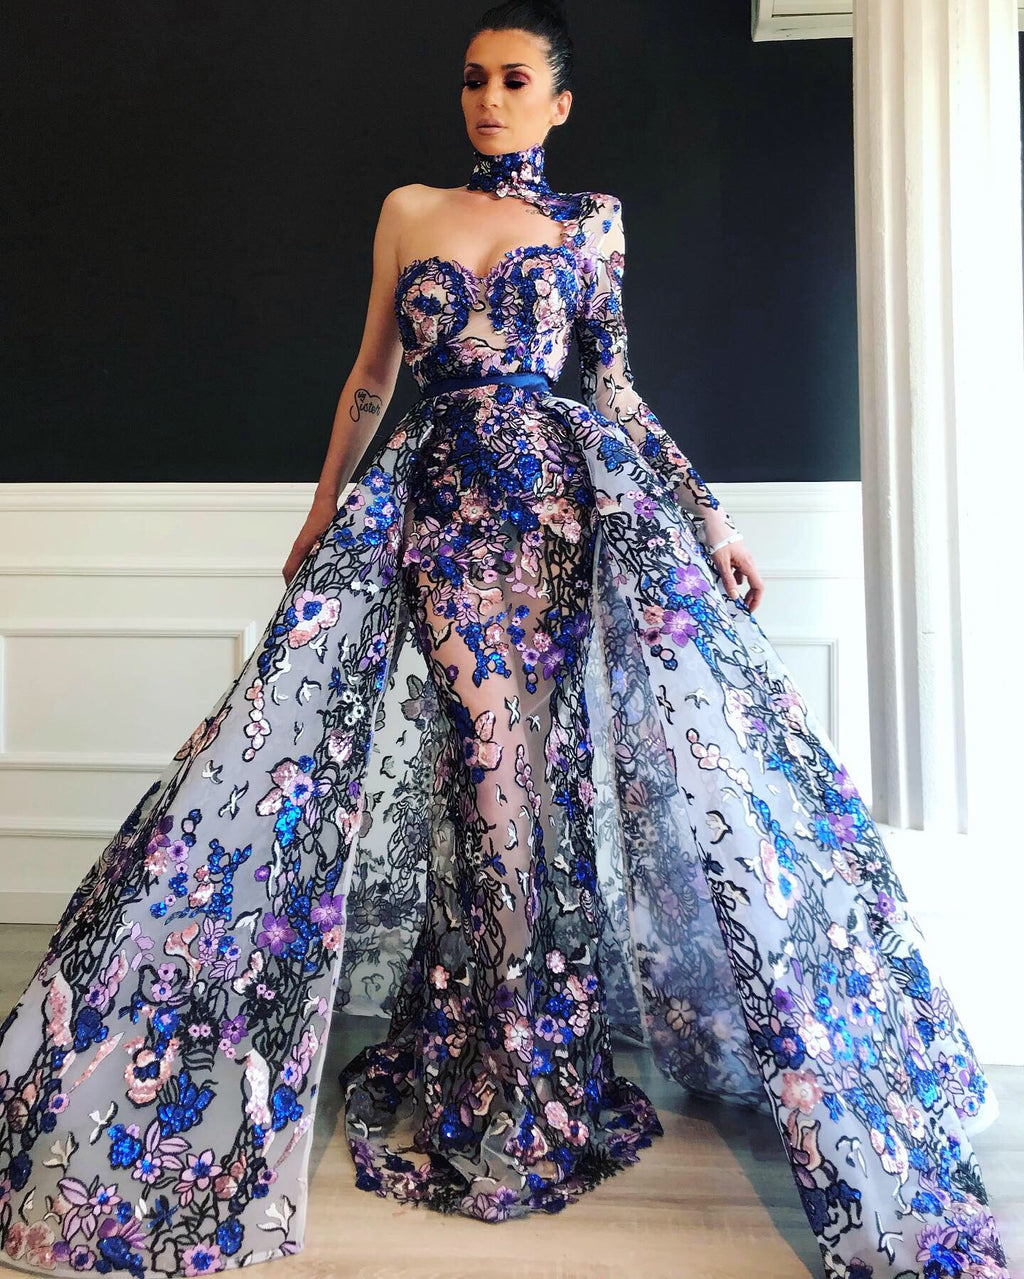 gowns for women | gowns for girls | gowns for sale | gowns for weddings | gowns for prom | gowns dresses | gowns beautiful gowns | gowns images | gowns design | gowns fashion show | gowns 3d